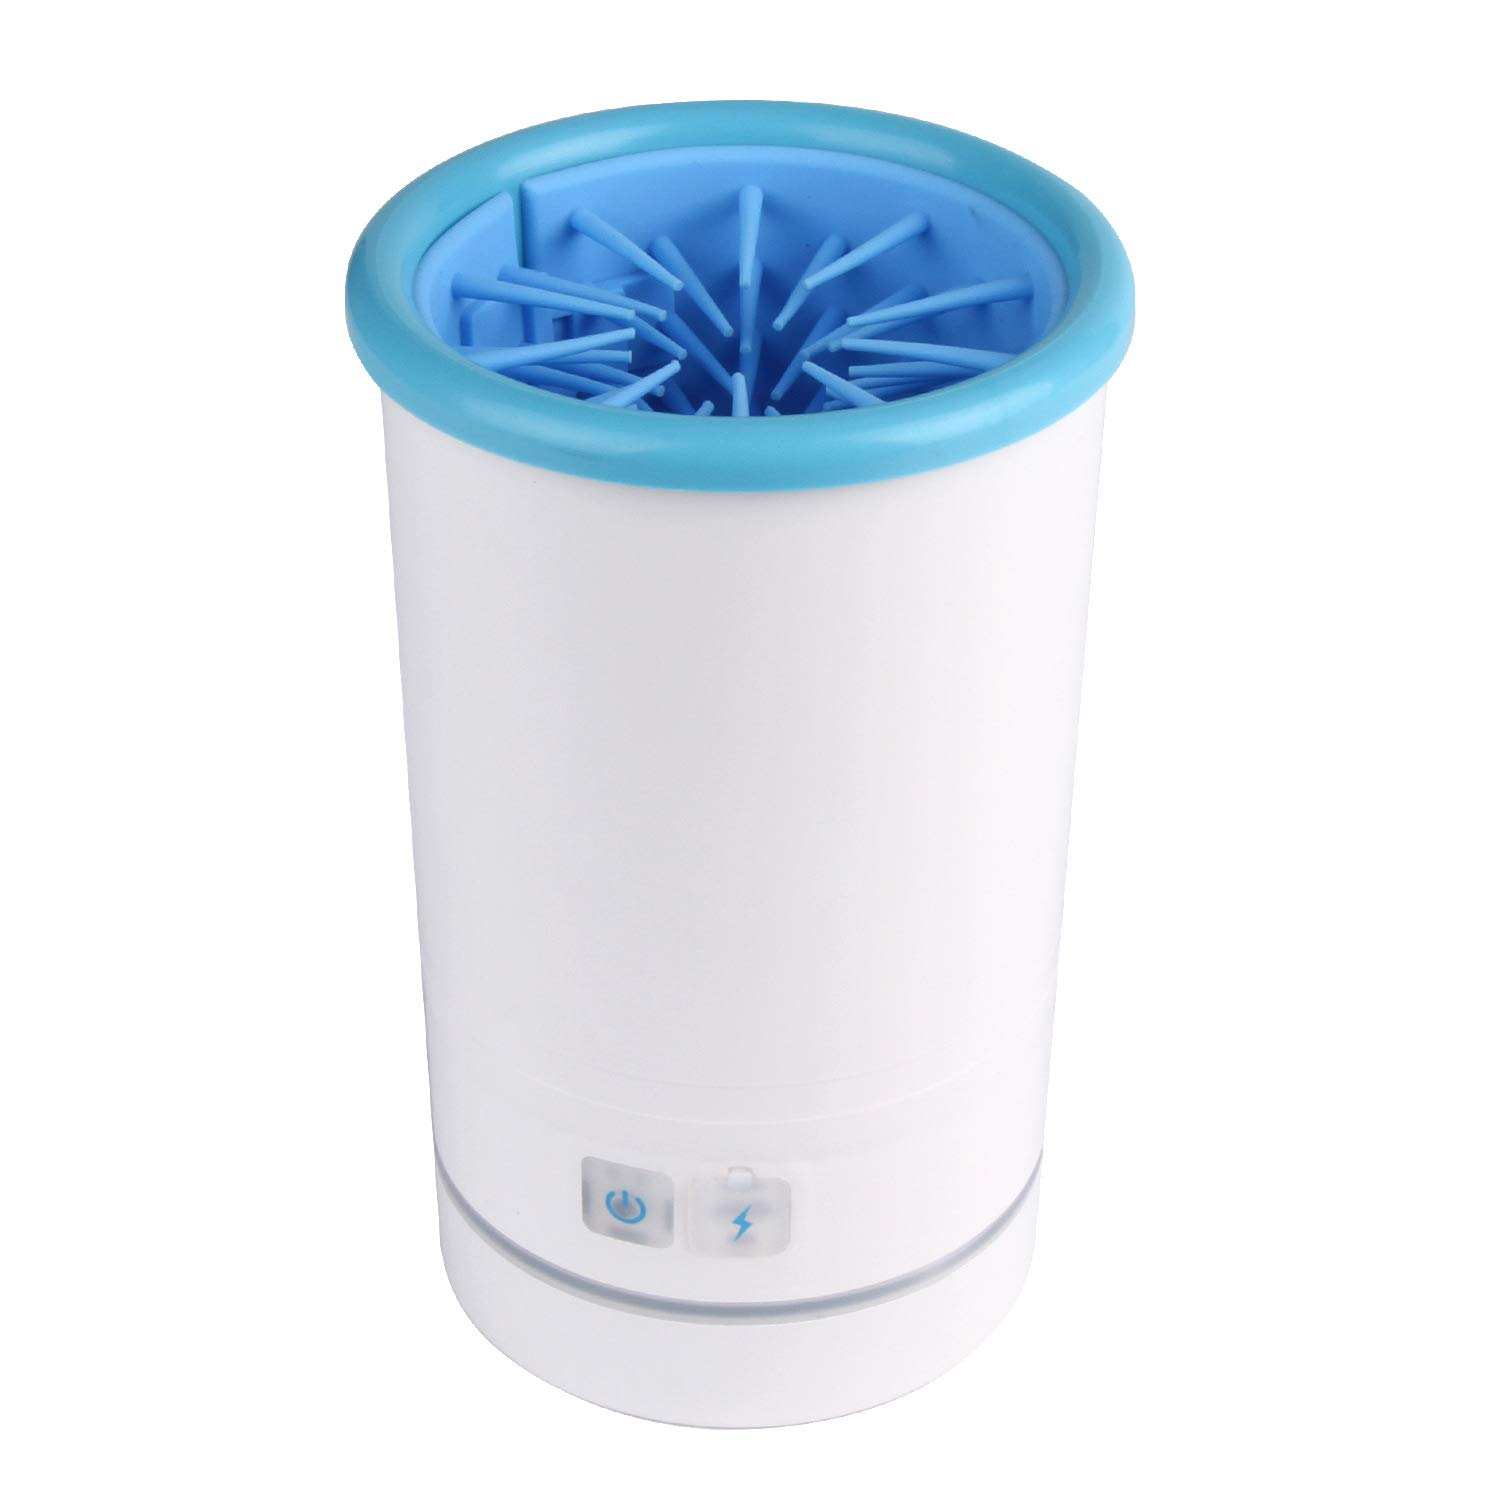 Jinitaimei Pet Cleaner,Soft Silicone Portable Automatic Pet Foot Cleaner Suitable for Cats and Dogs,M